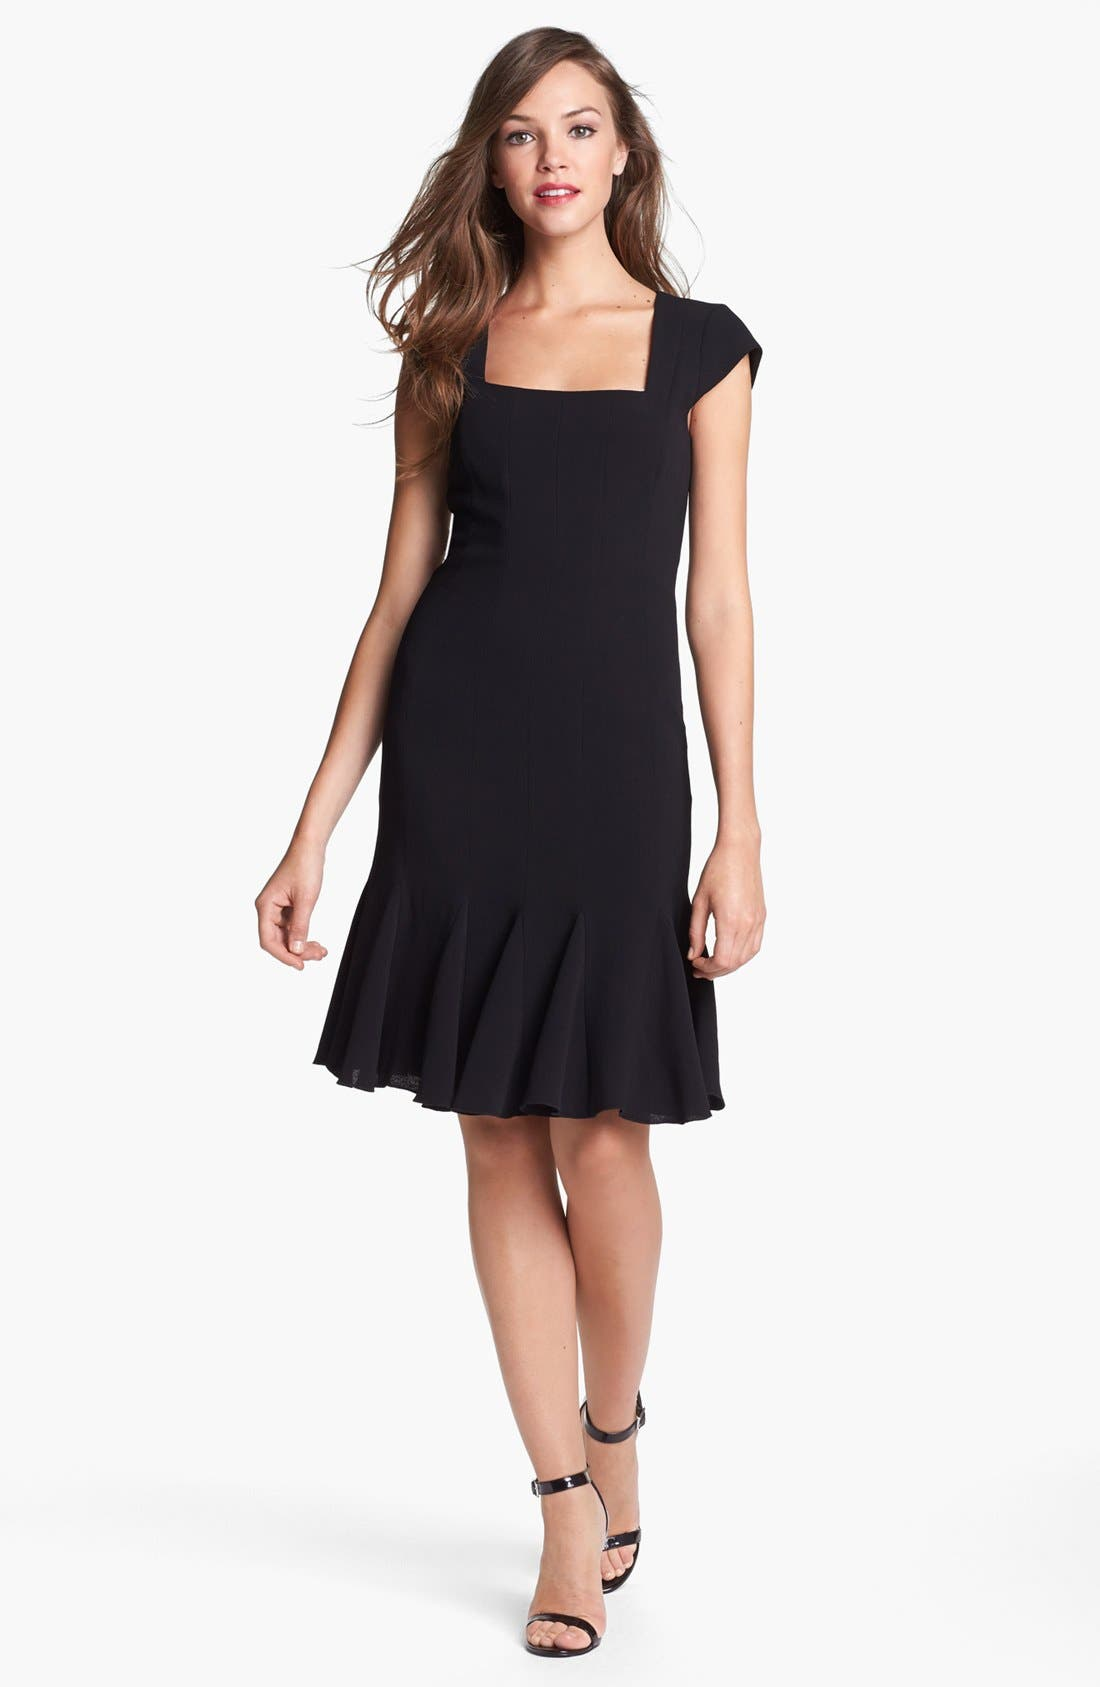 Alternate Image 1 Selected - BCBGMAXAZRIA Cap Sleeve Fit & Flare Dress